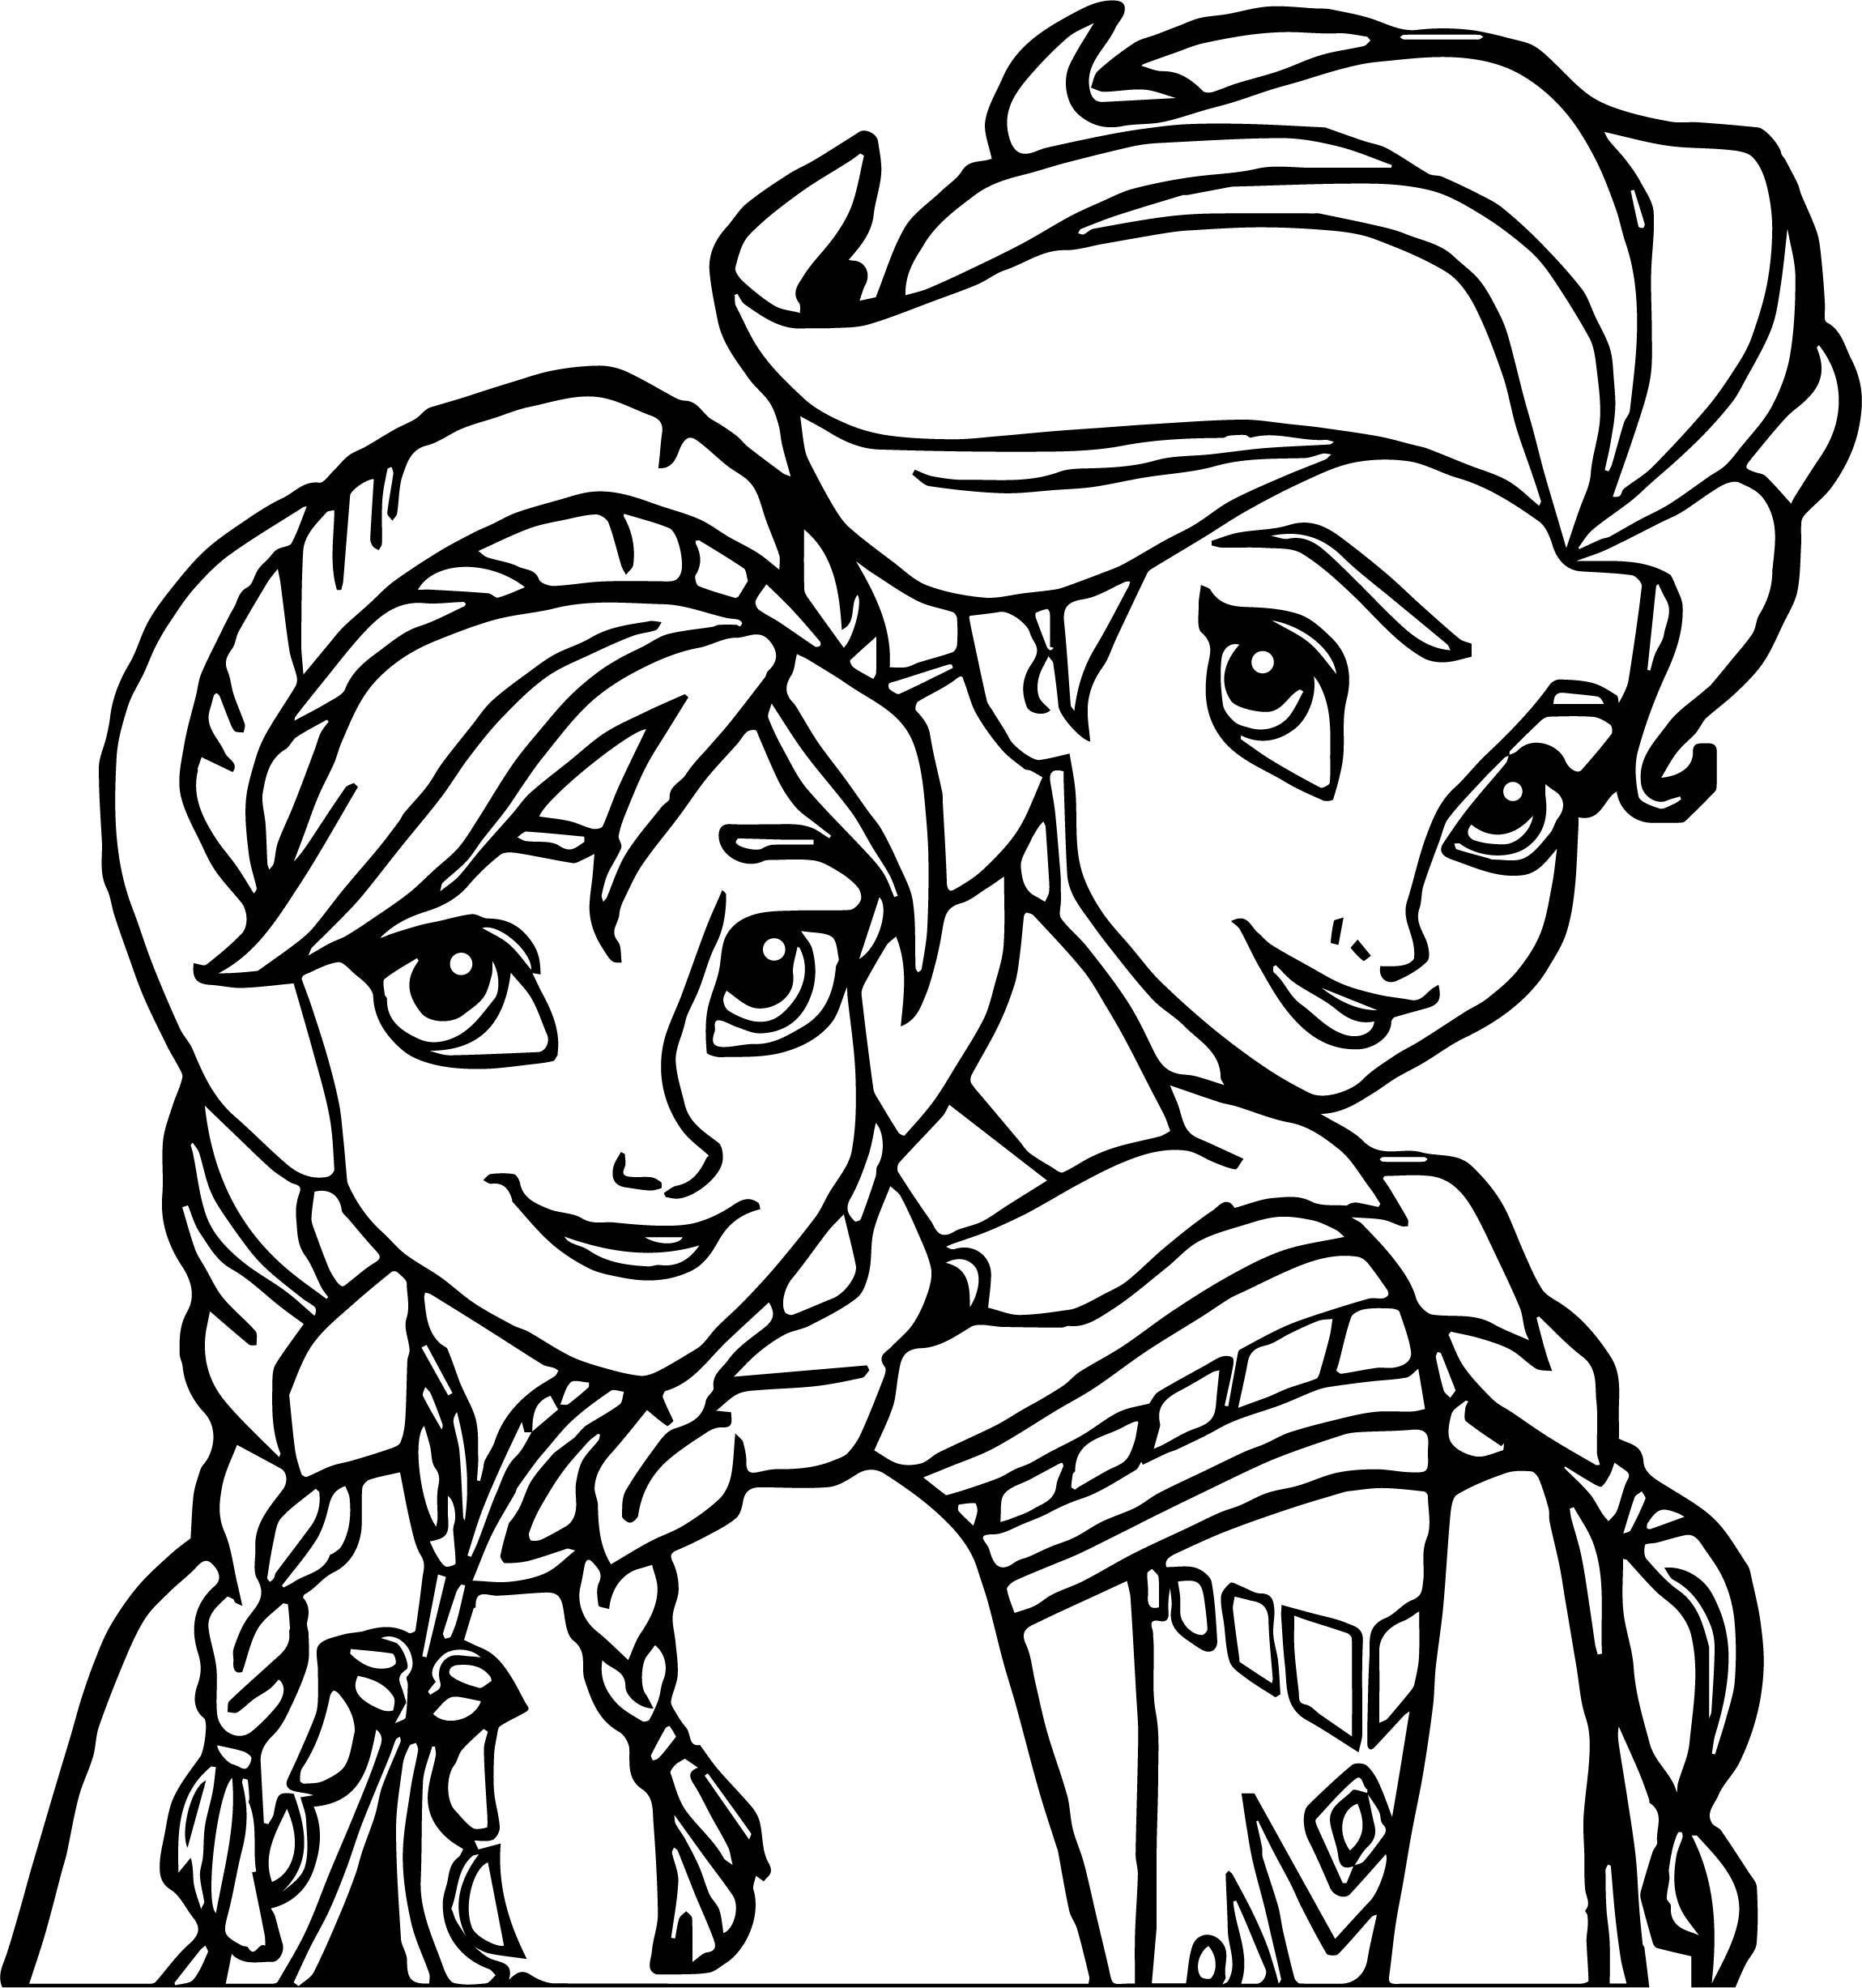 frozen drawings to color frozen 2 coloring pages elsa and anna coloring to frozen drawings color